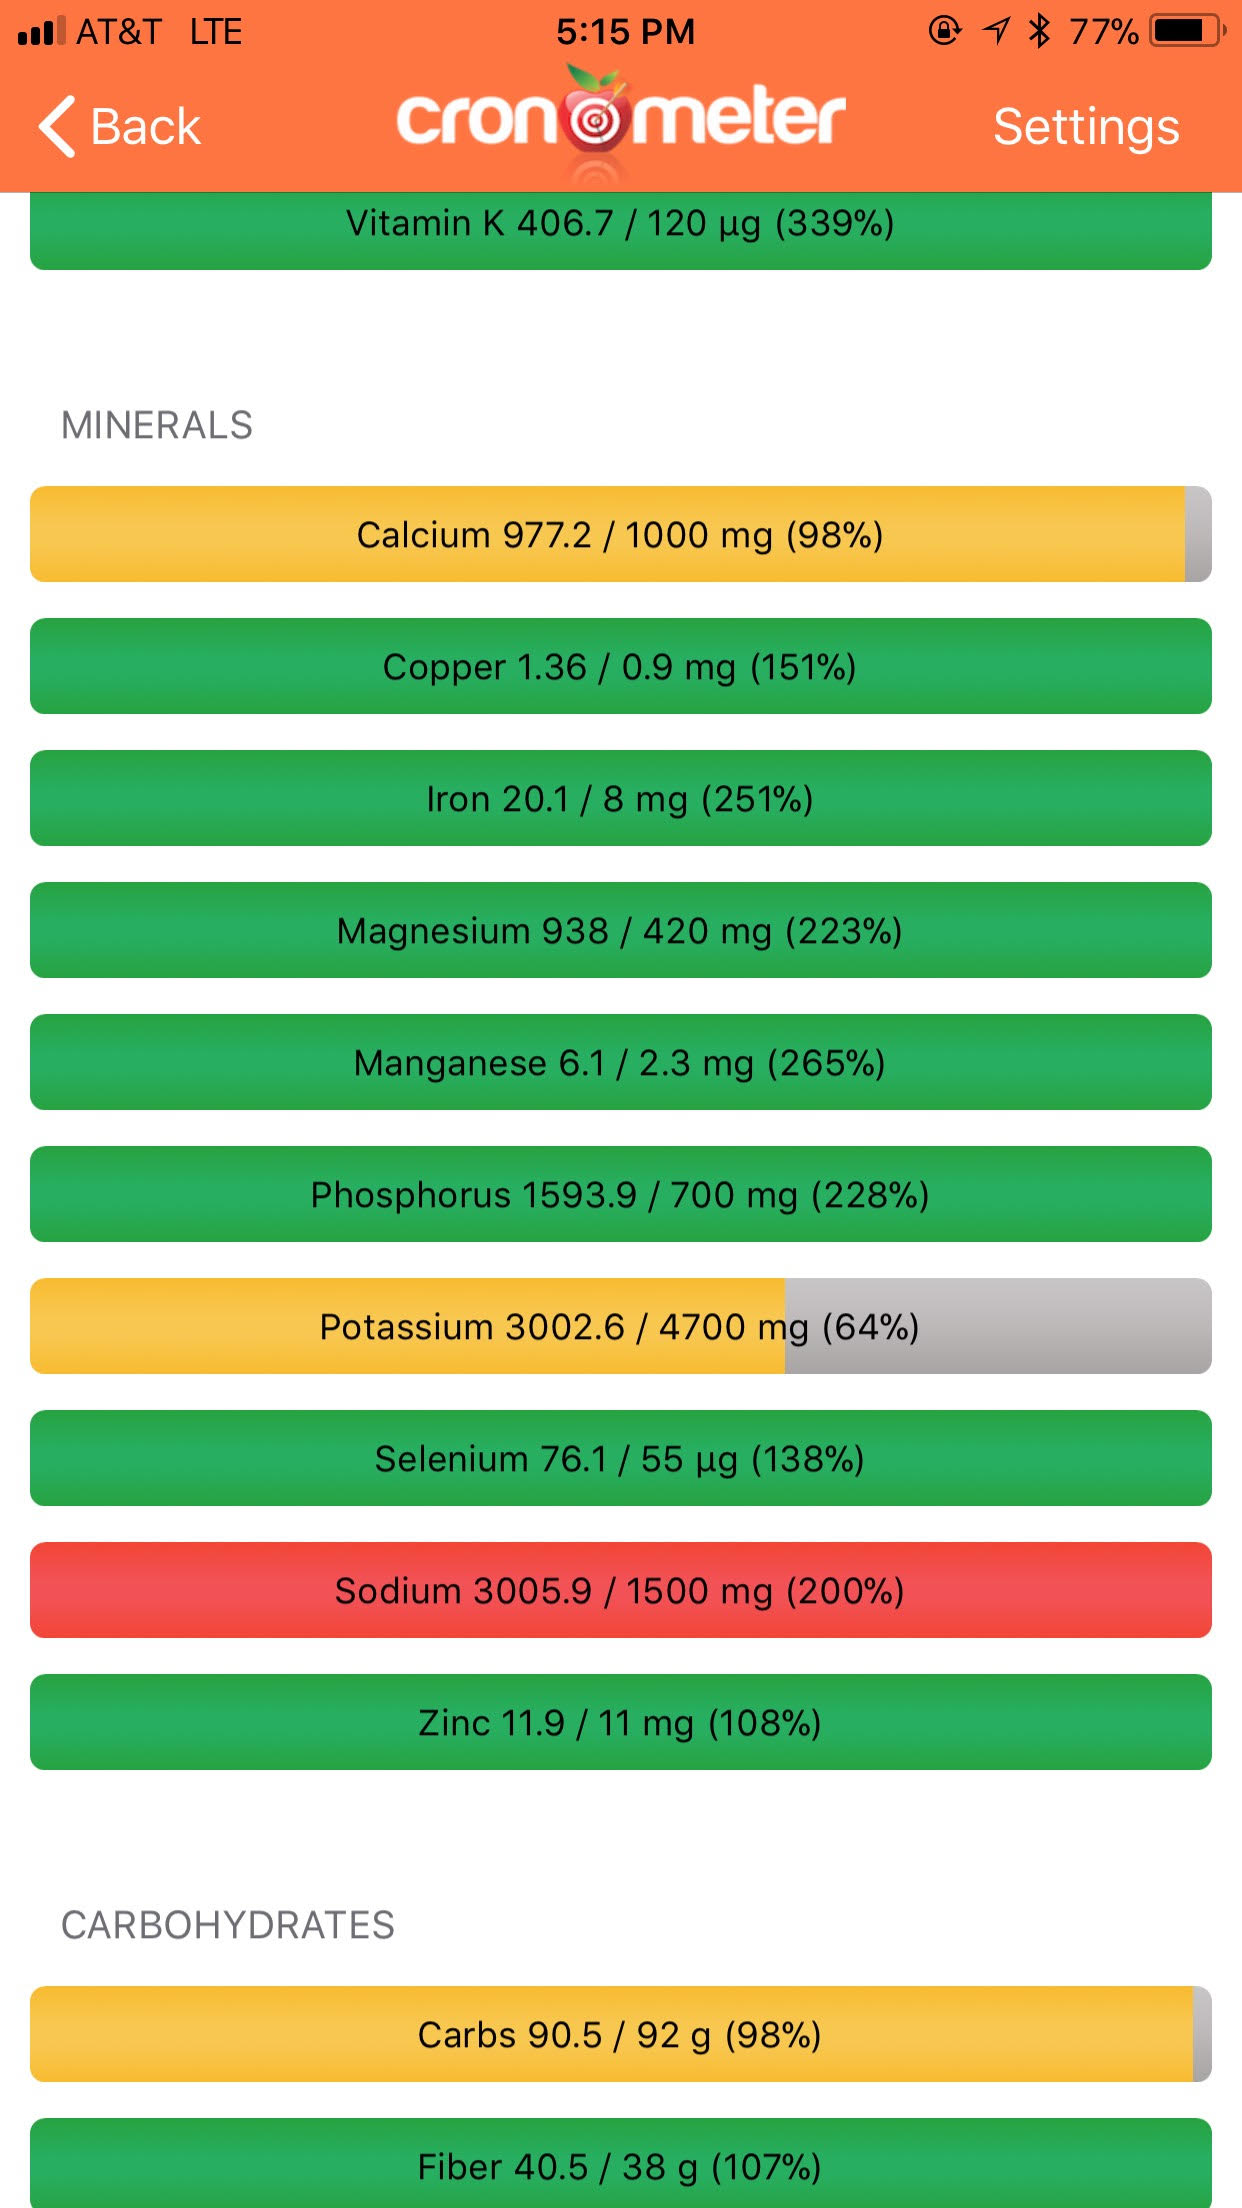 Here is an example of a random day's nutrition I took from August. This is how the mineral breakdown will show up on the Cronometer App. Being over on certain minerals is absolutely acceptable. For example, notice Magnesium was 223% that day. However, I got a red indication for too much sodium. Normally, I would not be too concerned with this IF my potassium intake was also high (to balance the high sodium), but it wasn't. So this day was definitely a learning experience with the foods I ate. The whole point of this Challenge is to discover foods that fulfill our intakes AND make us feel great/perform awesome!